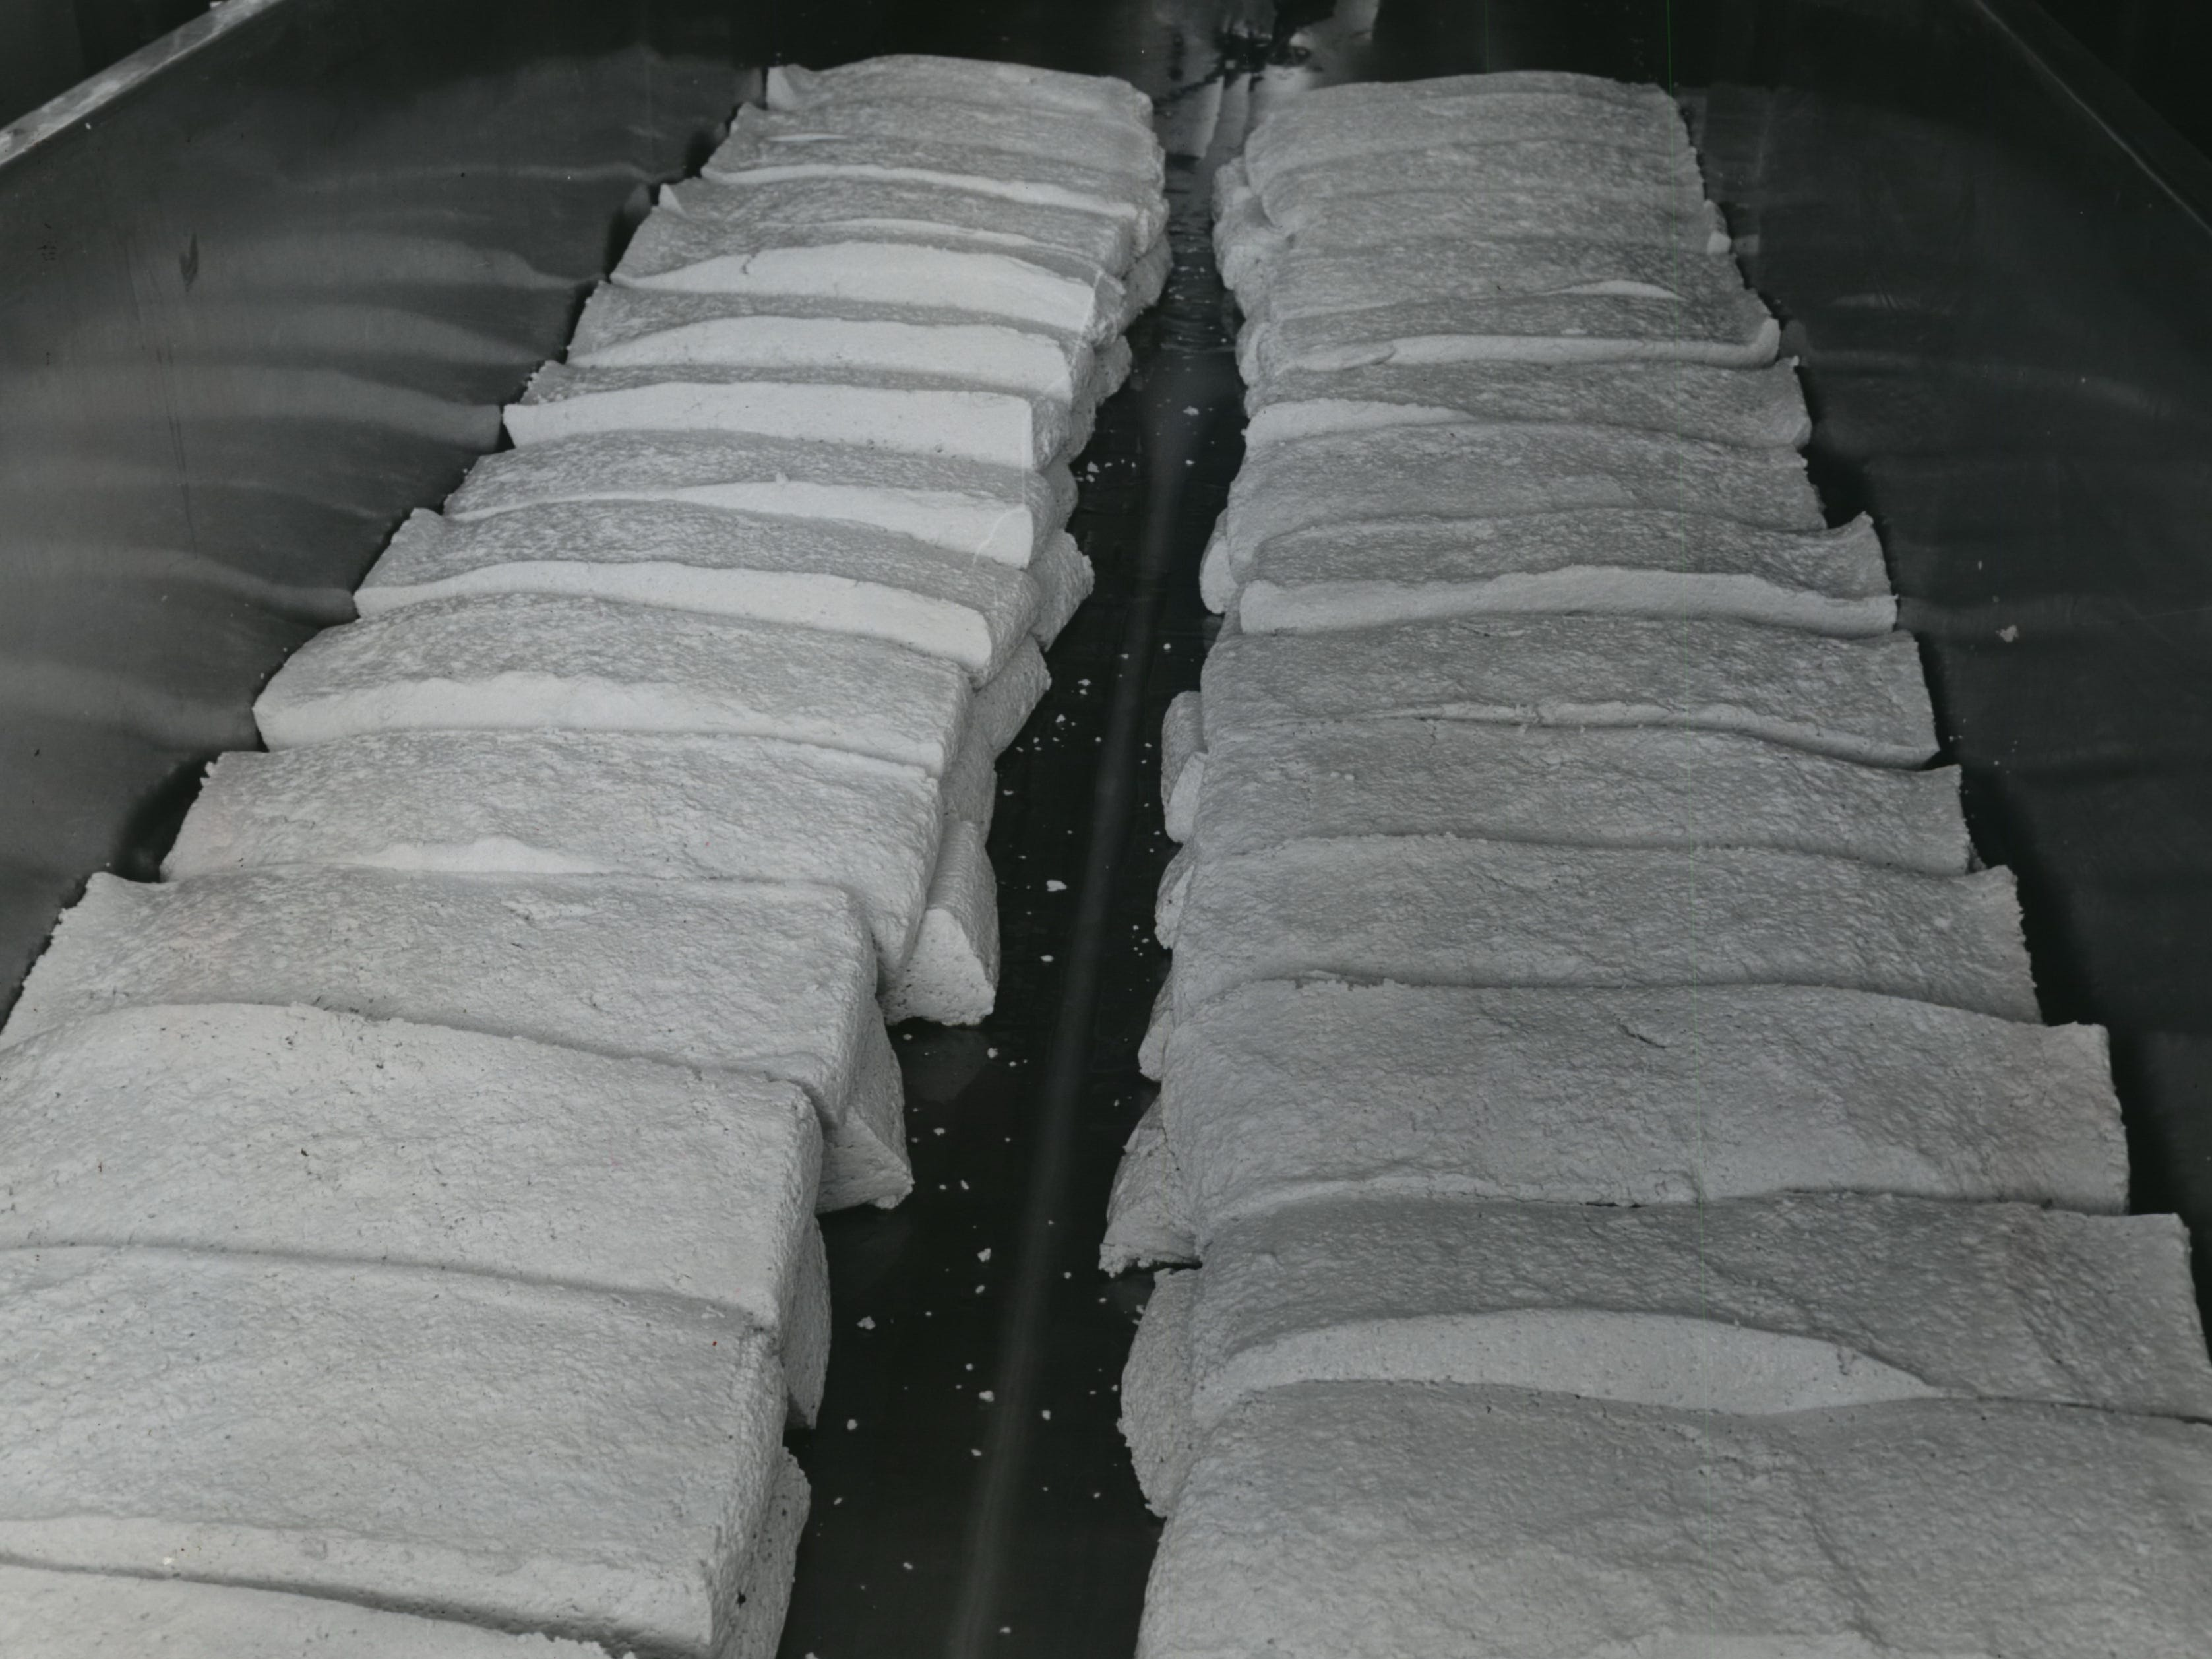 1950s: Cheese manufacturing continued to do well. This image shows what happens to milk when rennet is added. Rennet separates curd (solid) from whey (liquid). The curdled milk can then move to the next step in becoming cheese.